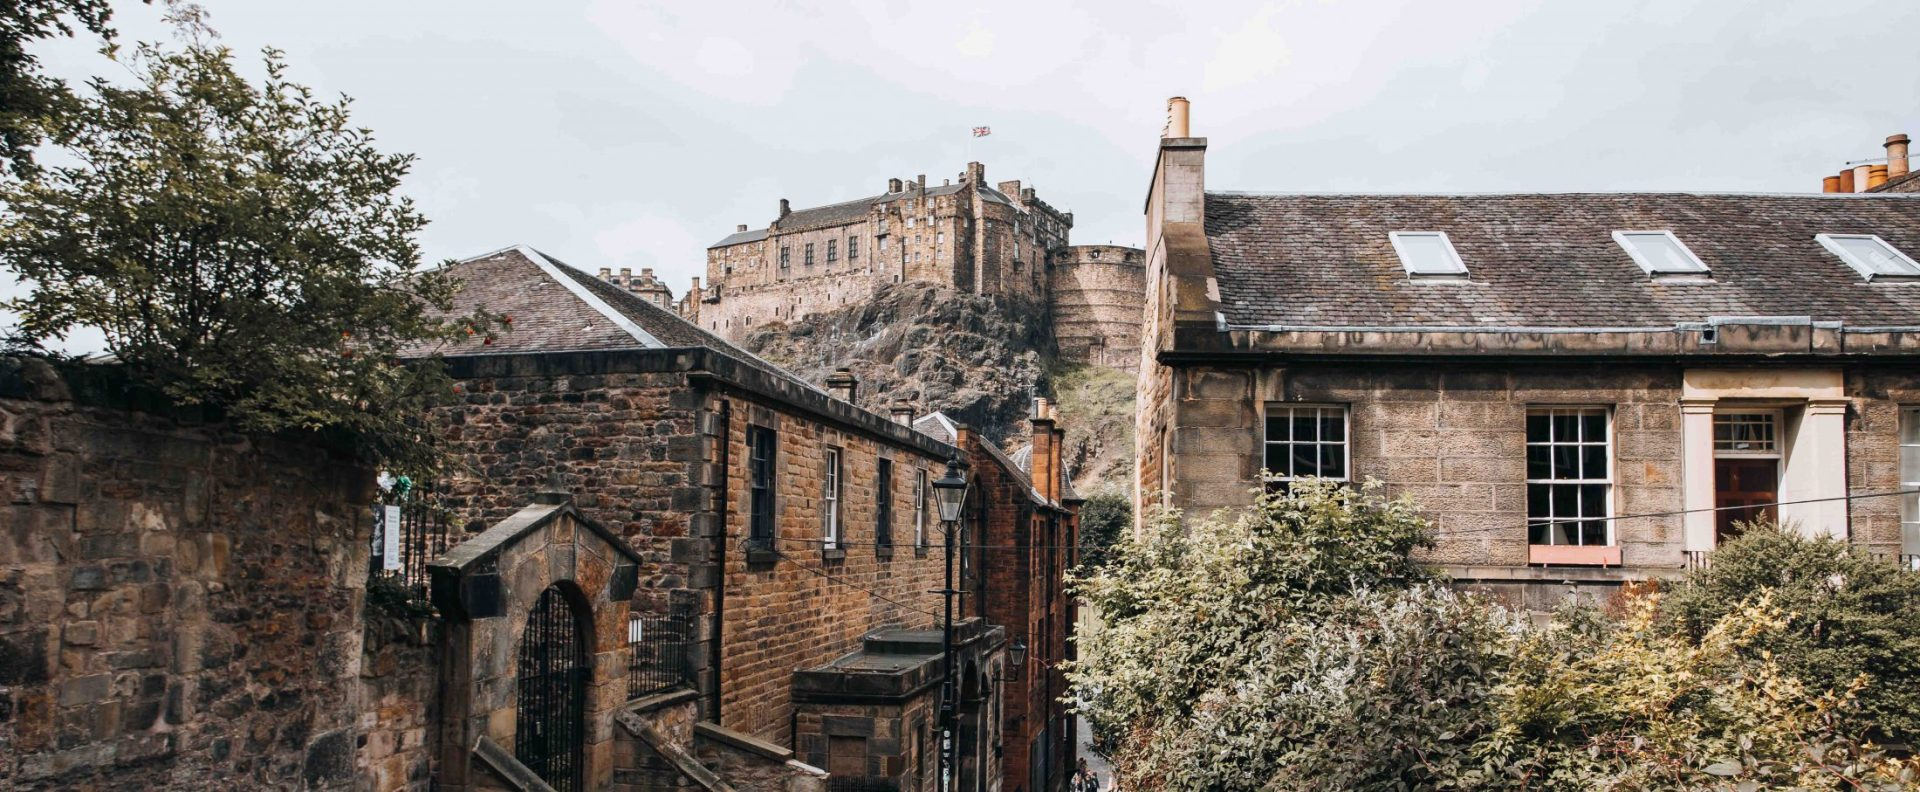 Offers | Extended Stays & Corporate Rates | The Edinburgh Collection